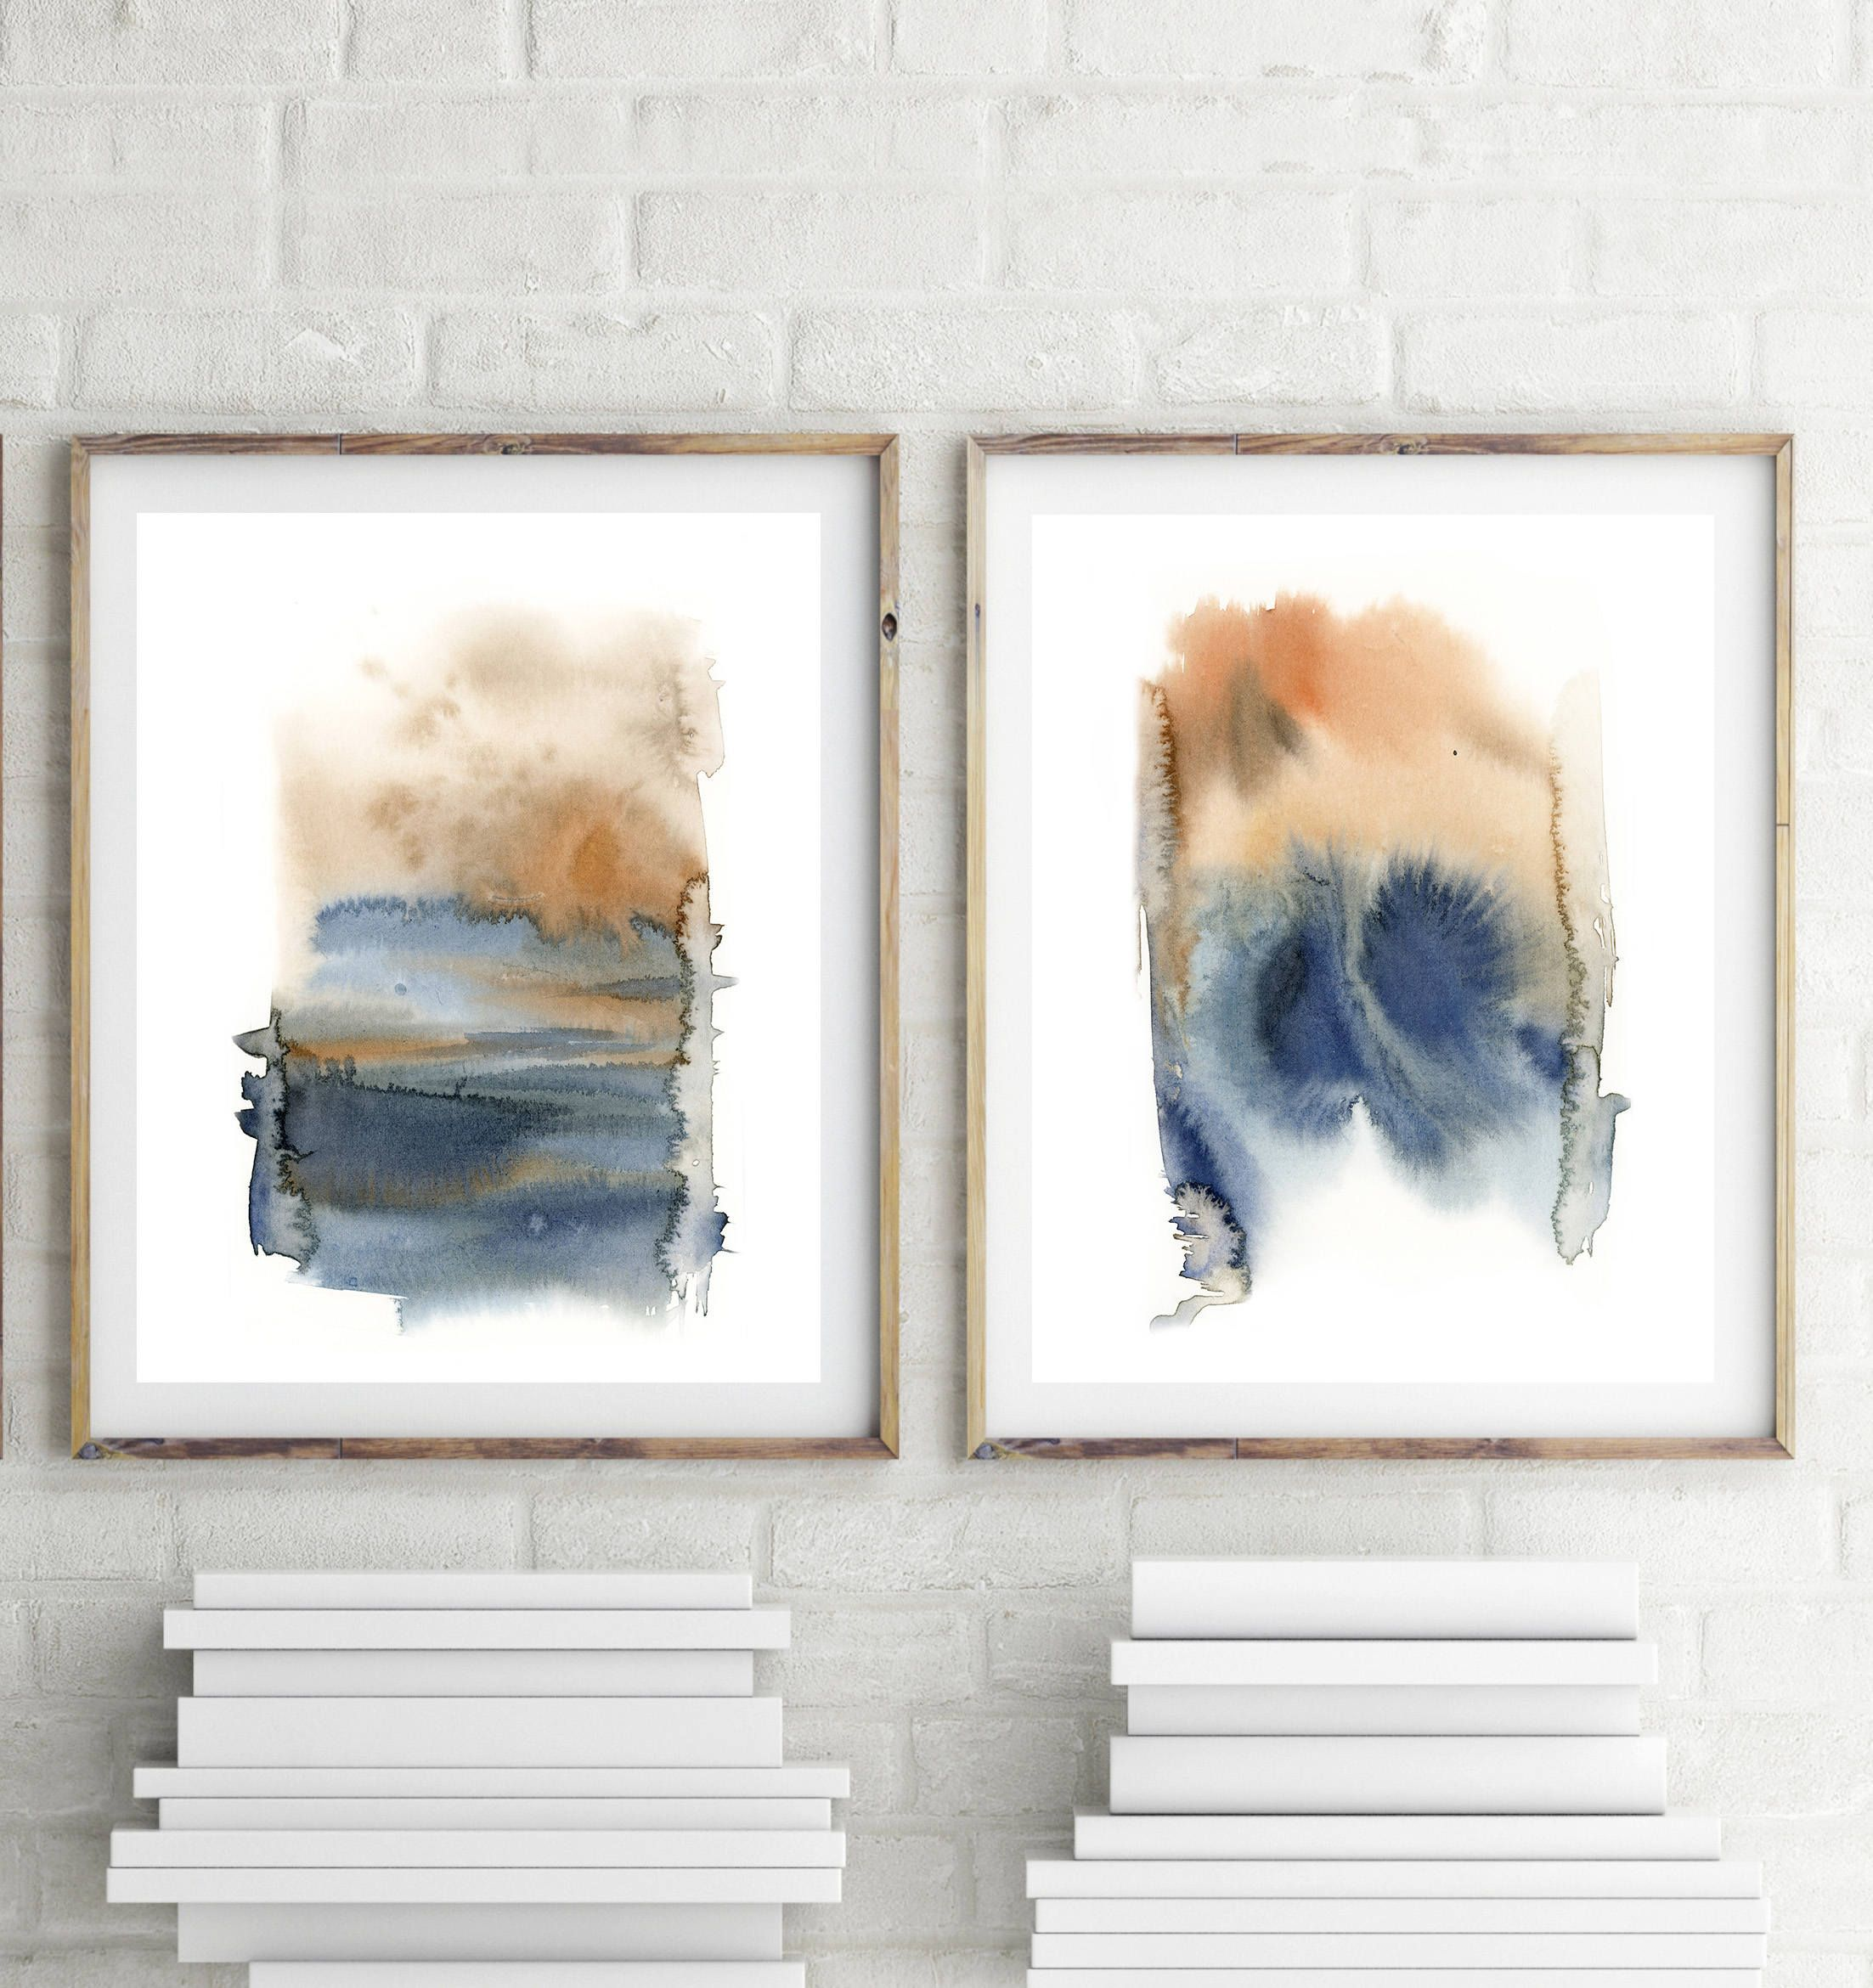 Abstract Landscape Art Print Set Minimalist Blue And Pale Orange Watercolor Prints Set Of 2 Fine Art Prints Modern Wall Decor Art In 2020 Abstract Art Landscape Modern Art Prints Modern